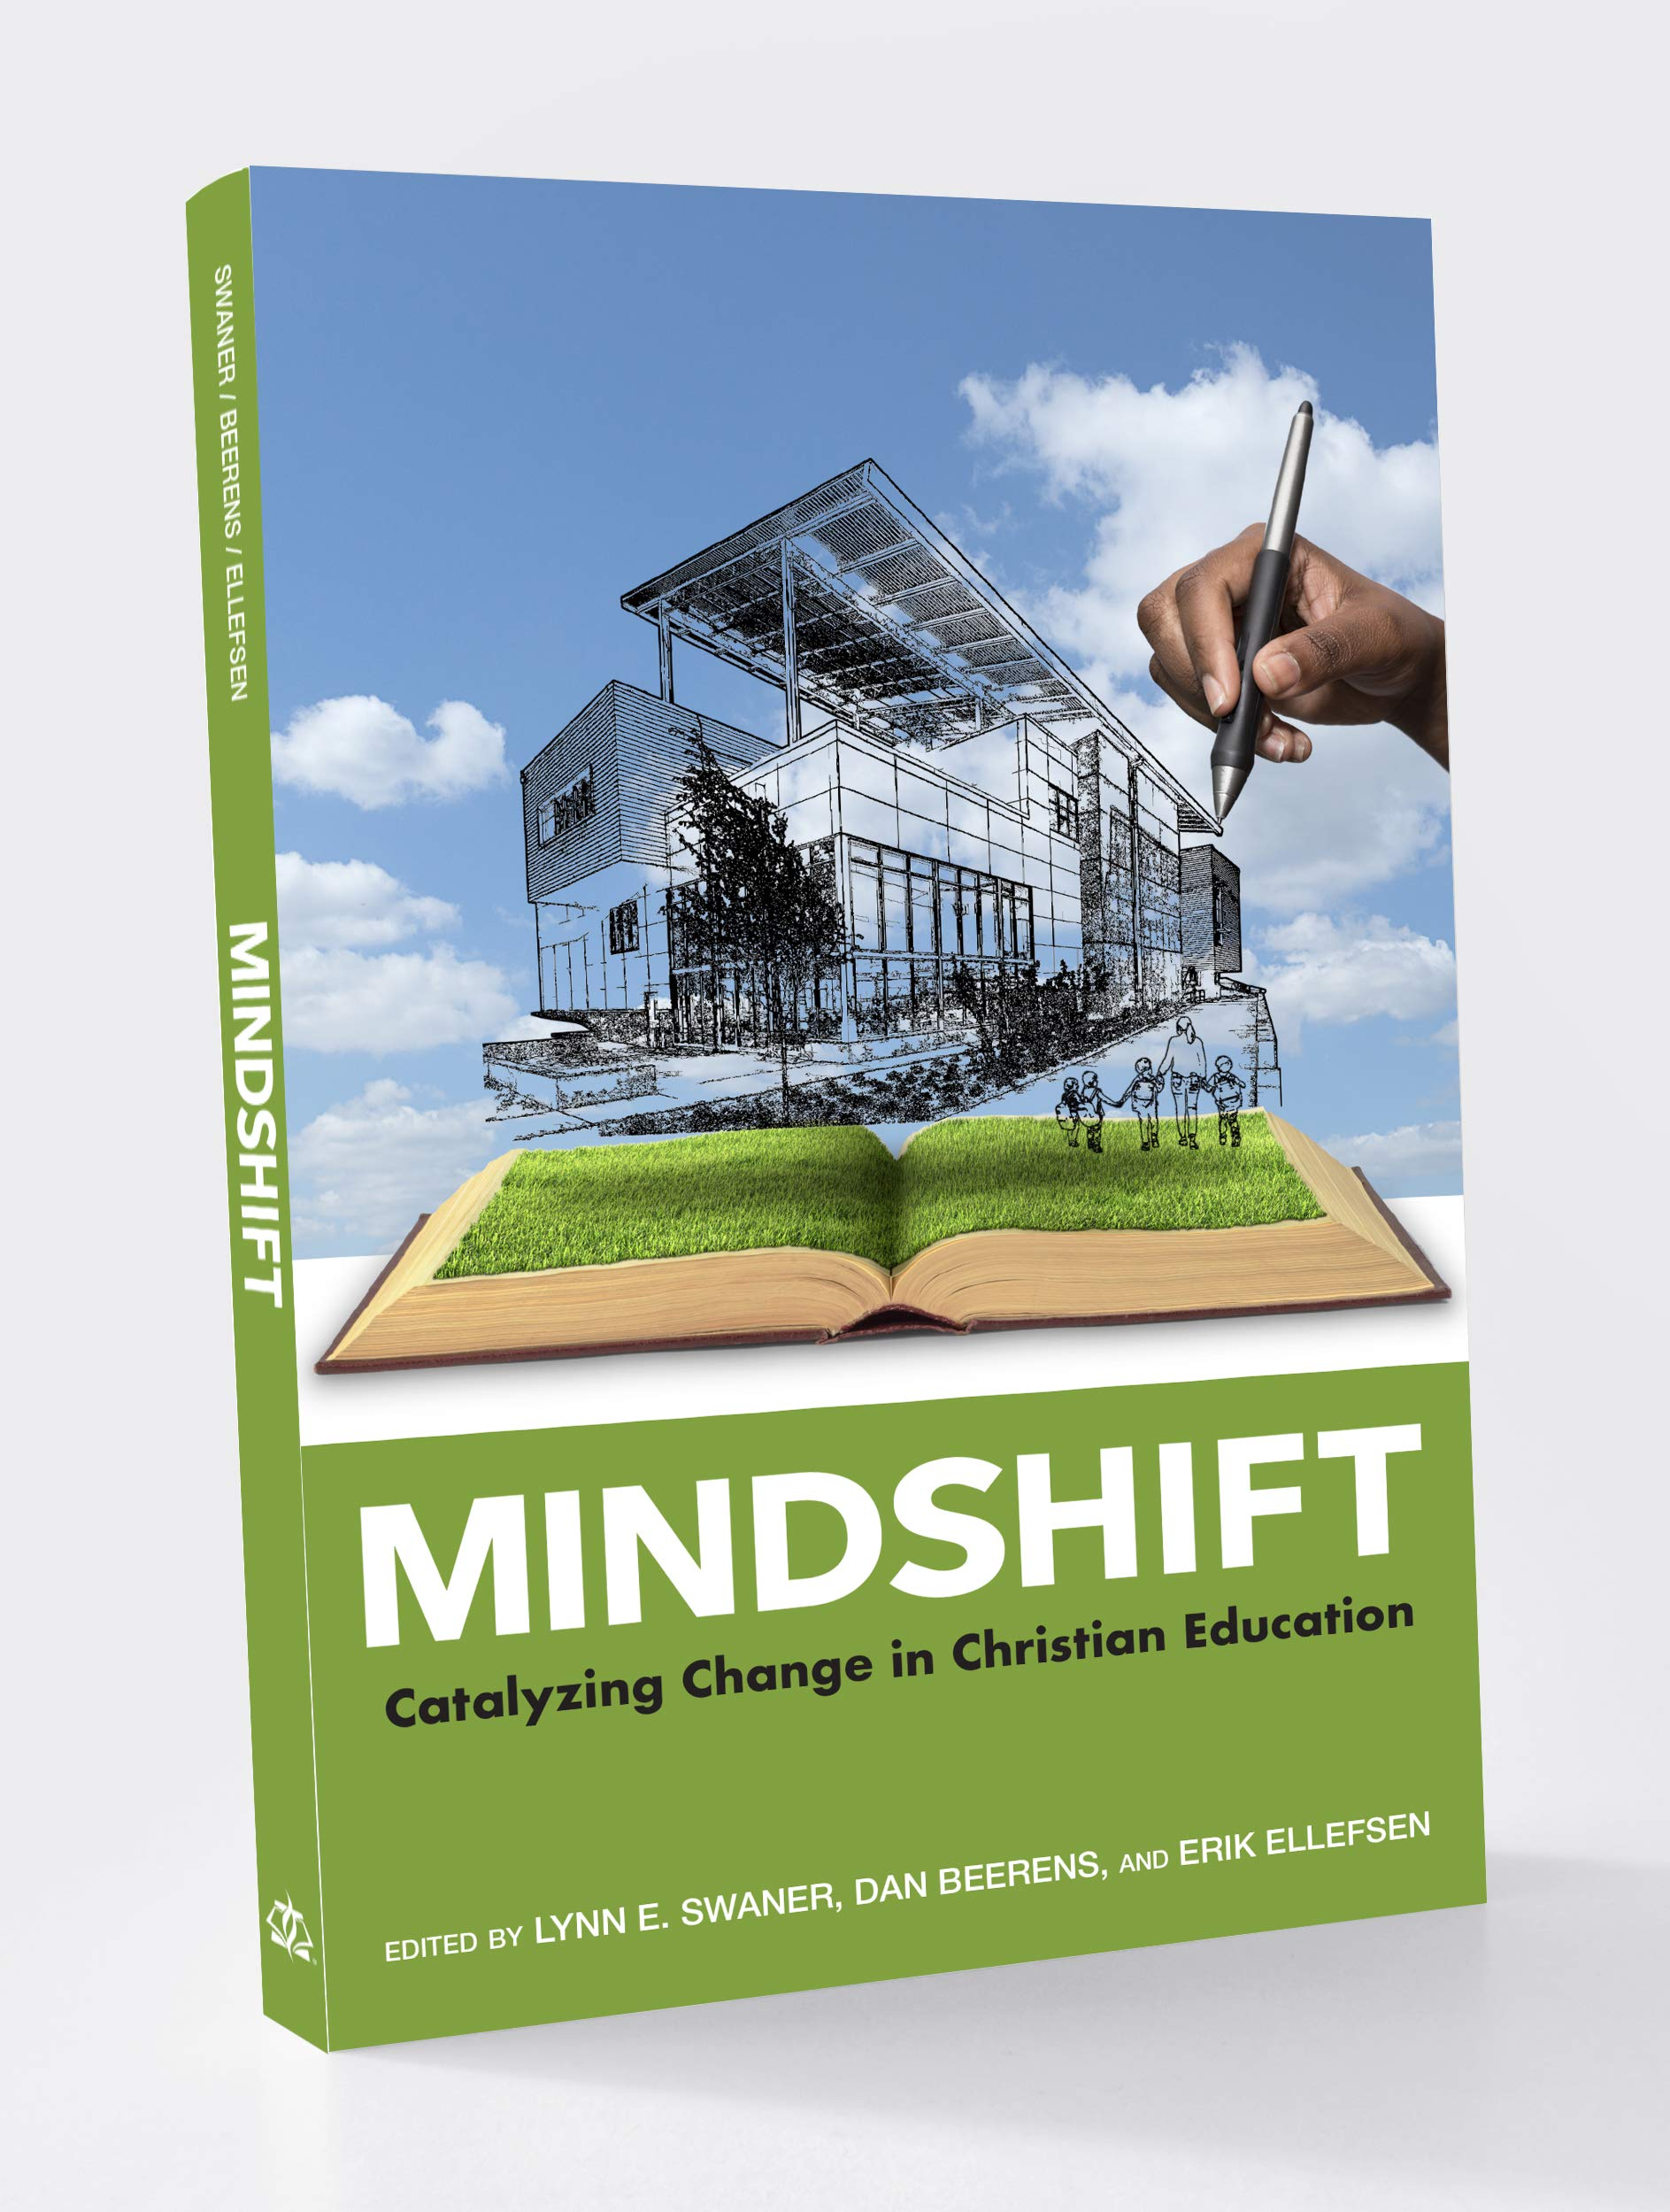 Amazon.com: MindShift (9781583315590): Lynn E. Swaner, Dan ...